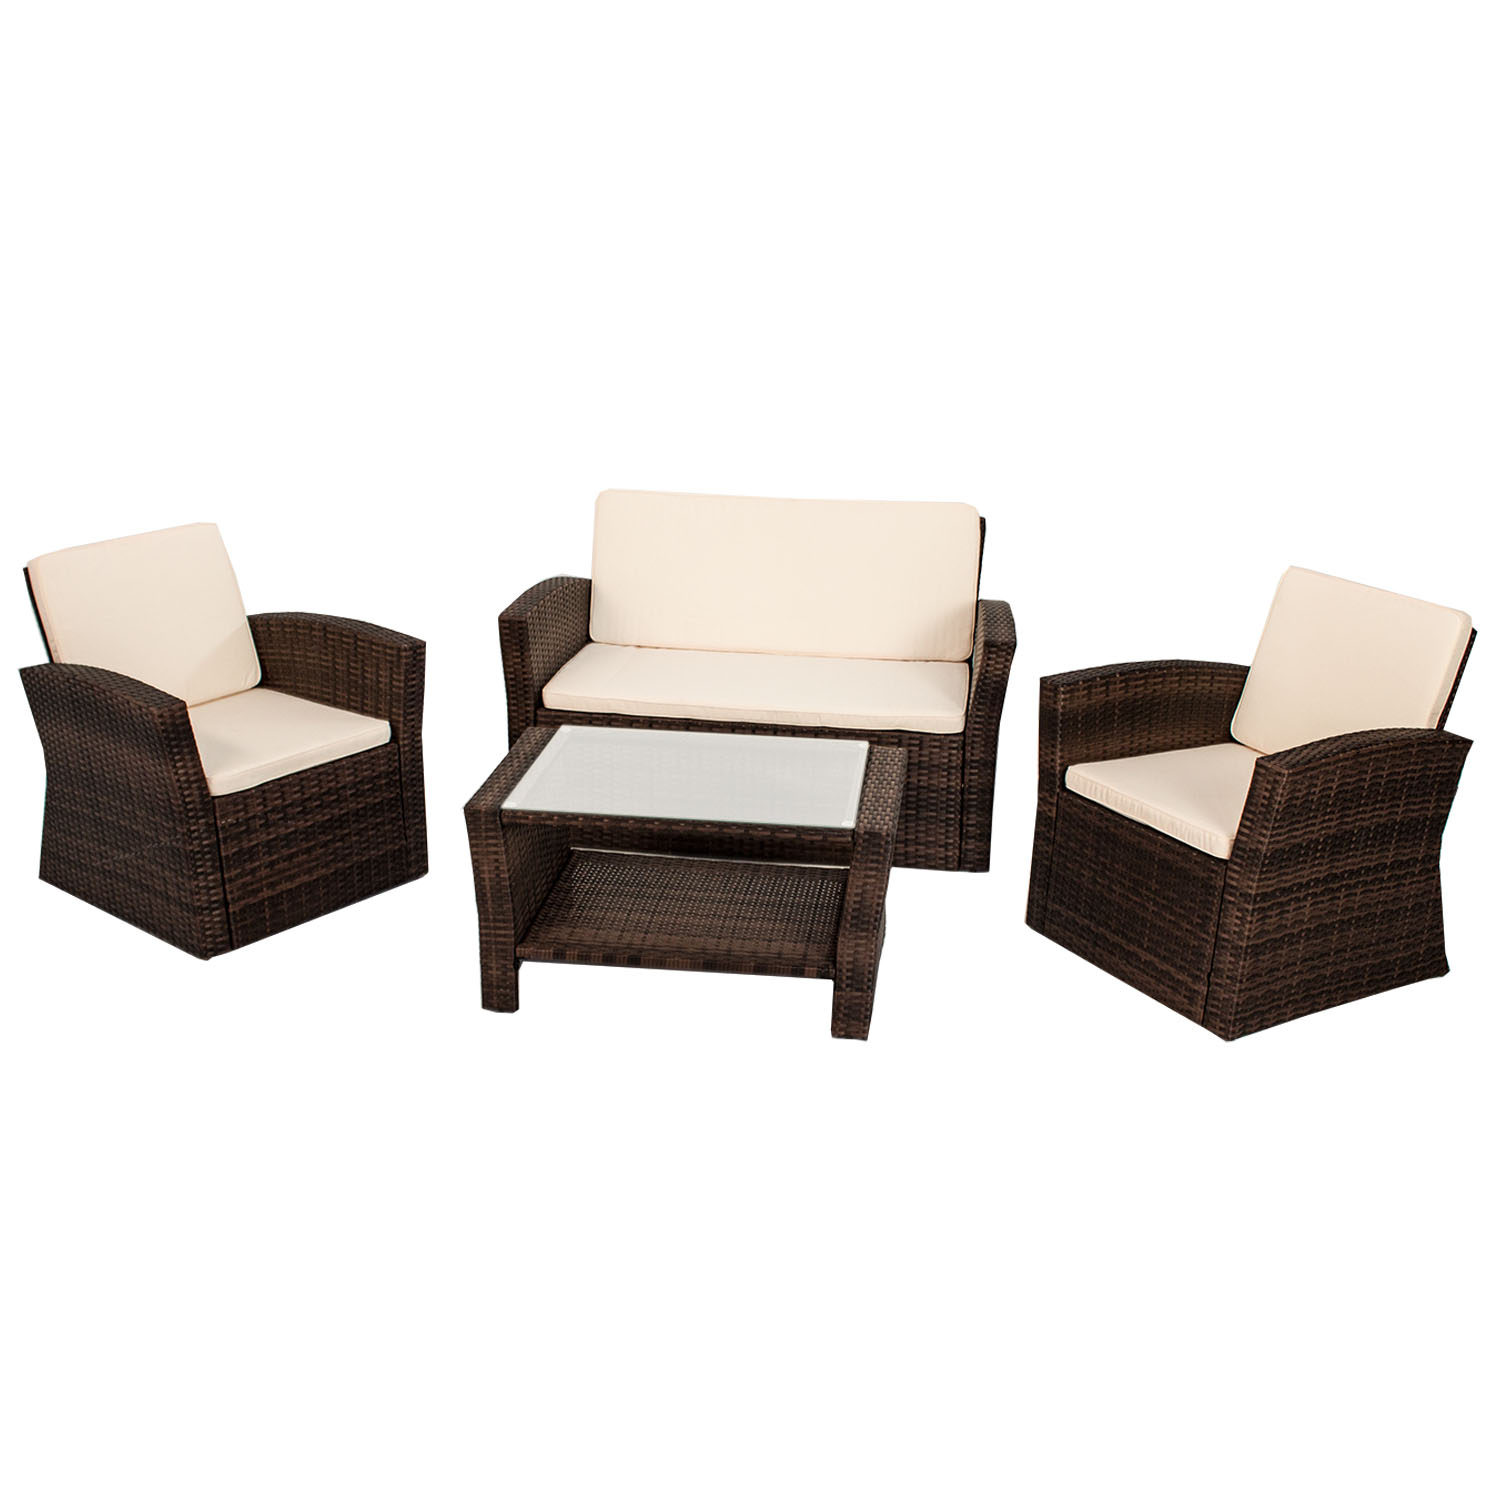 gartenm bel polyrattan lounge gartenset rattan sitzgruppe garnitur palm beach ebay. Black Bedroom Furniture Sets. Home Design Ideas